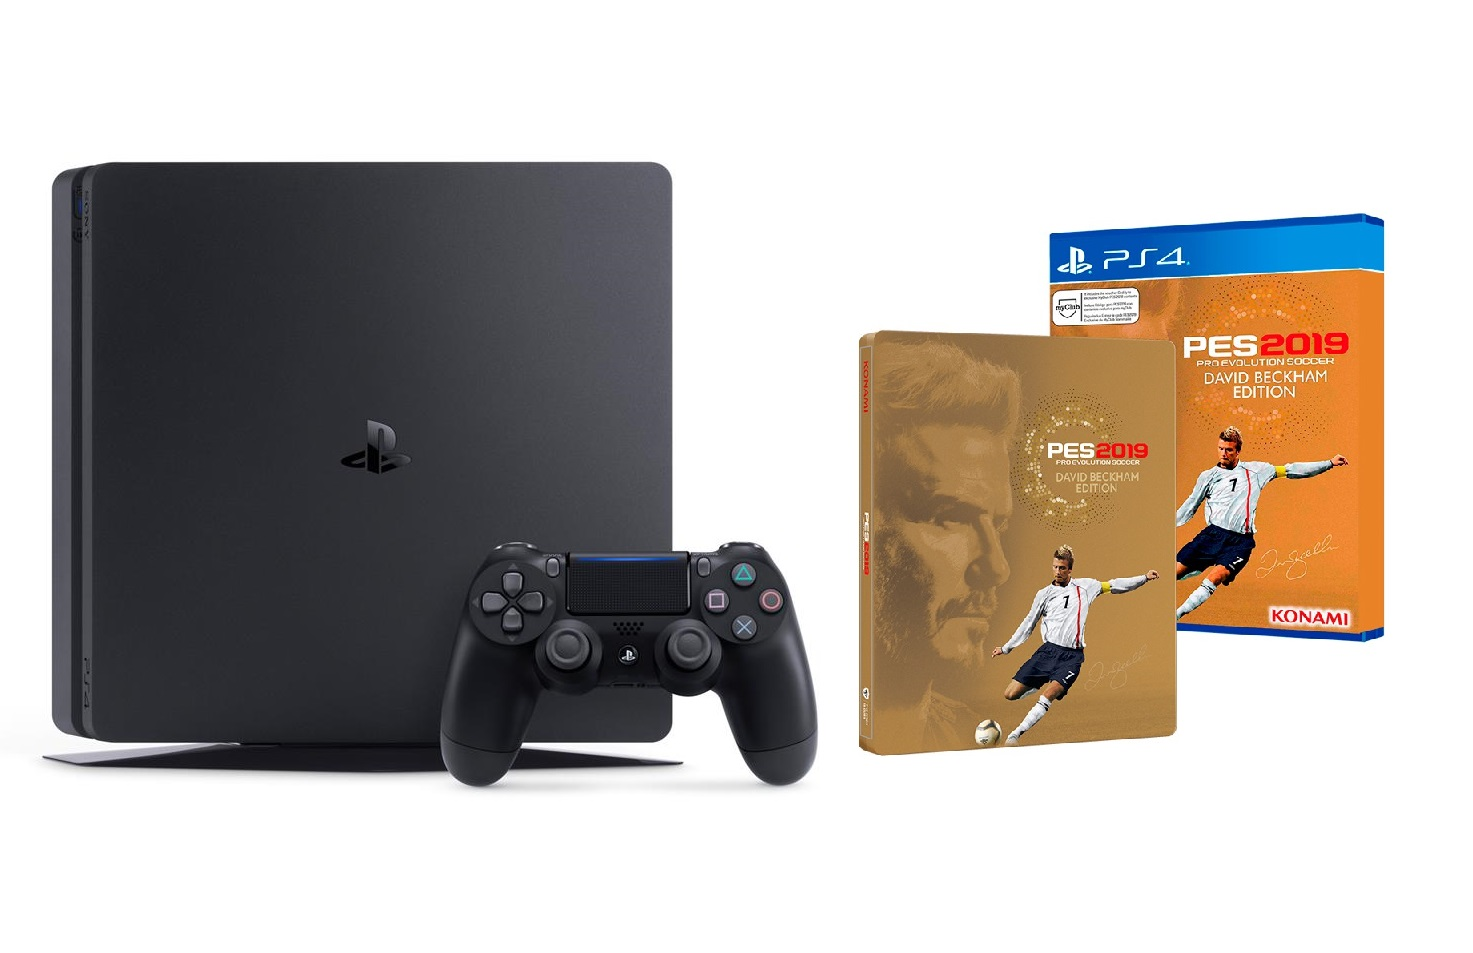 may-ps4-slim-500gb-pes-2019-david-beckham